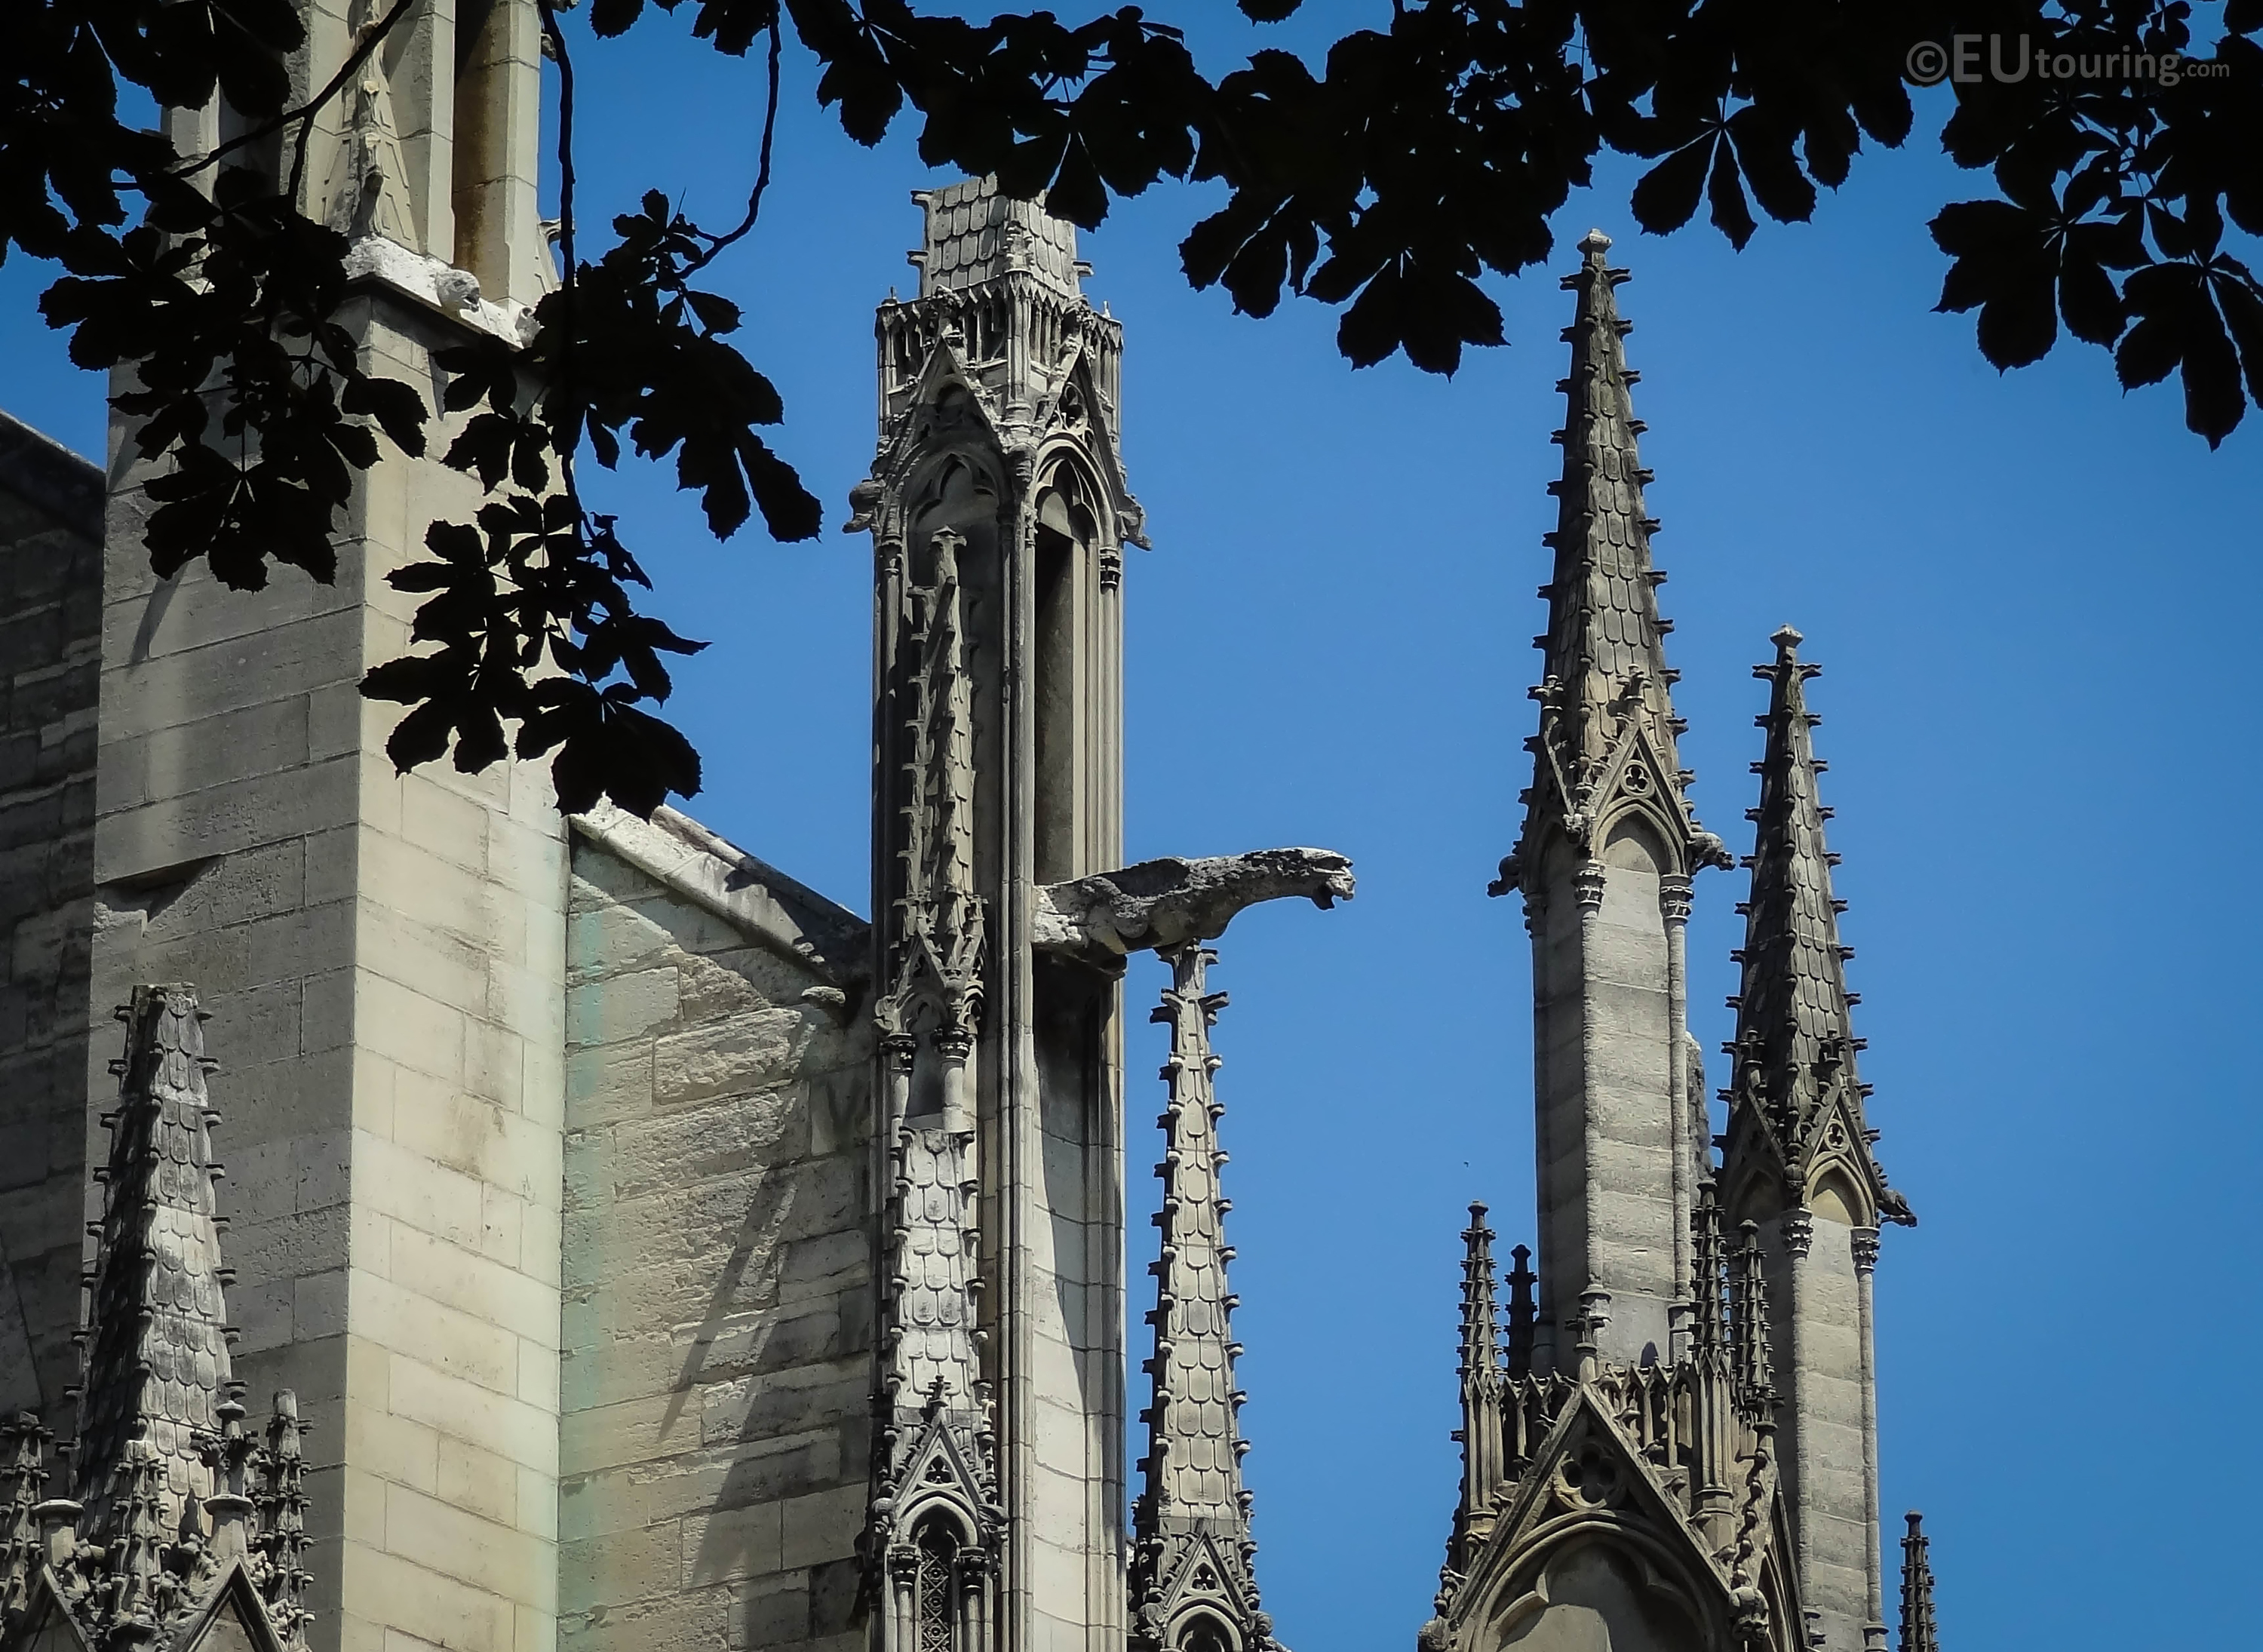 Gargoyle from a spire